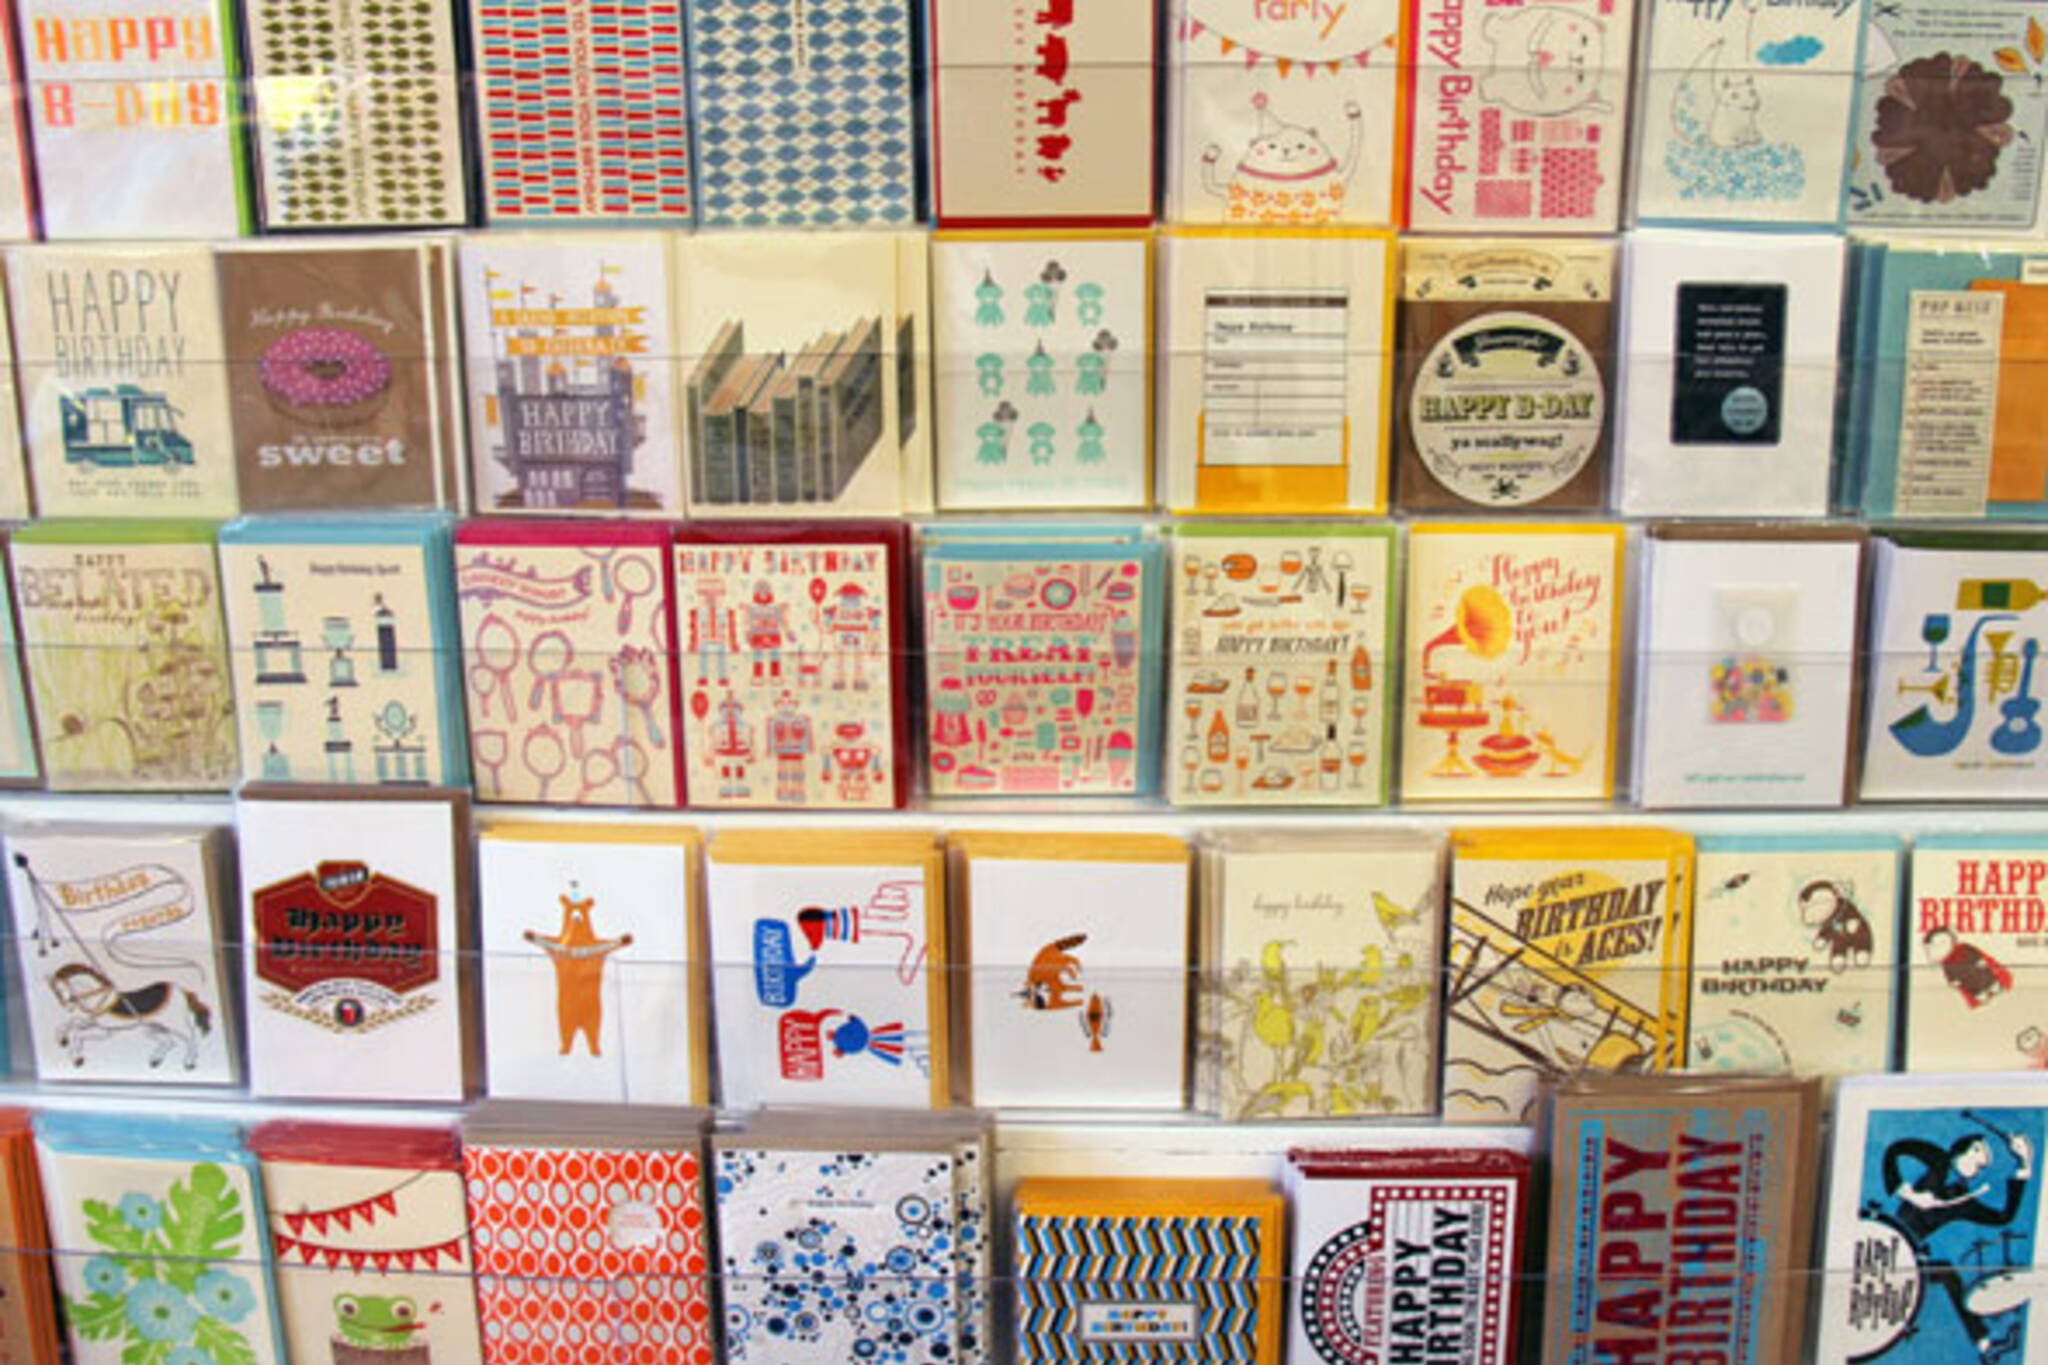 The Best Stores to Buy Greeting Cards in Toronto – Where Can I Buy Birthday Cards